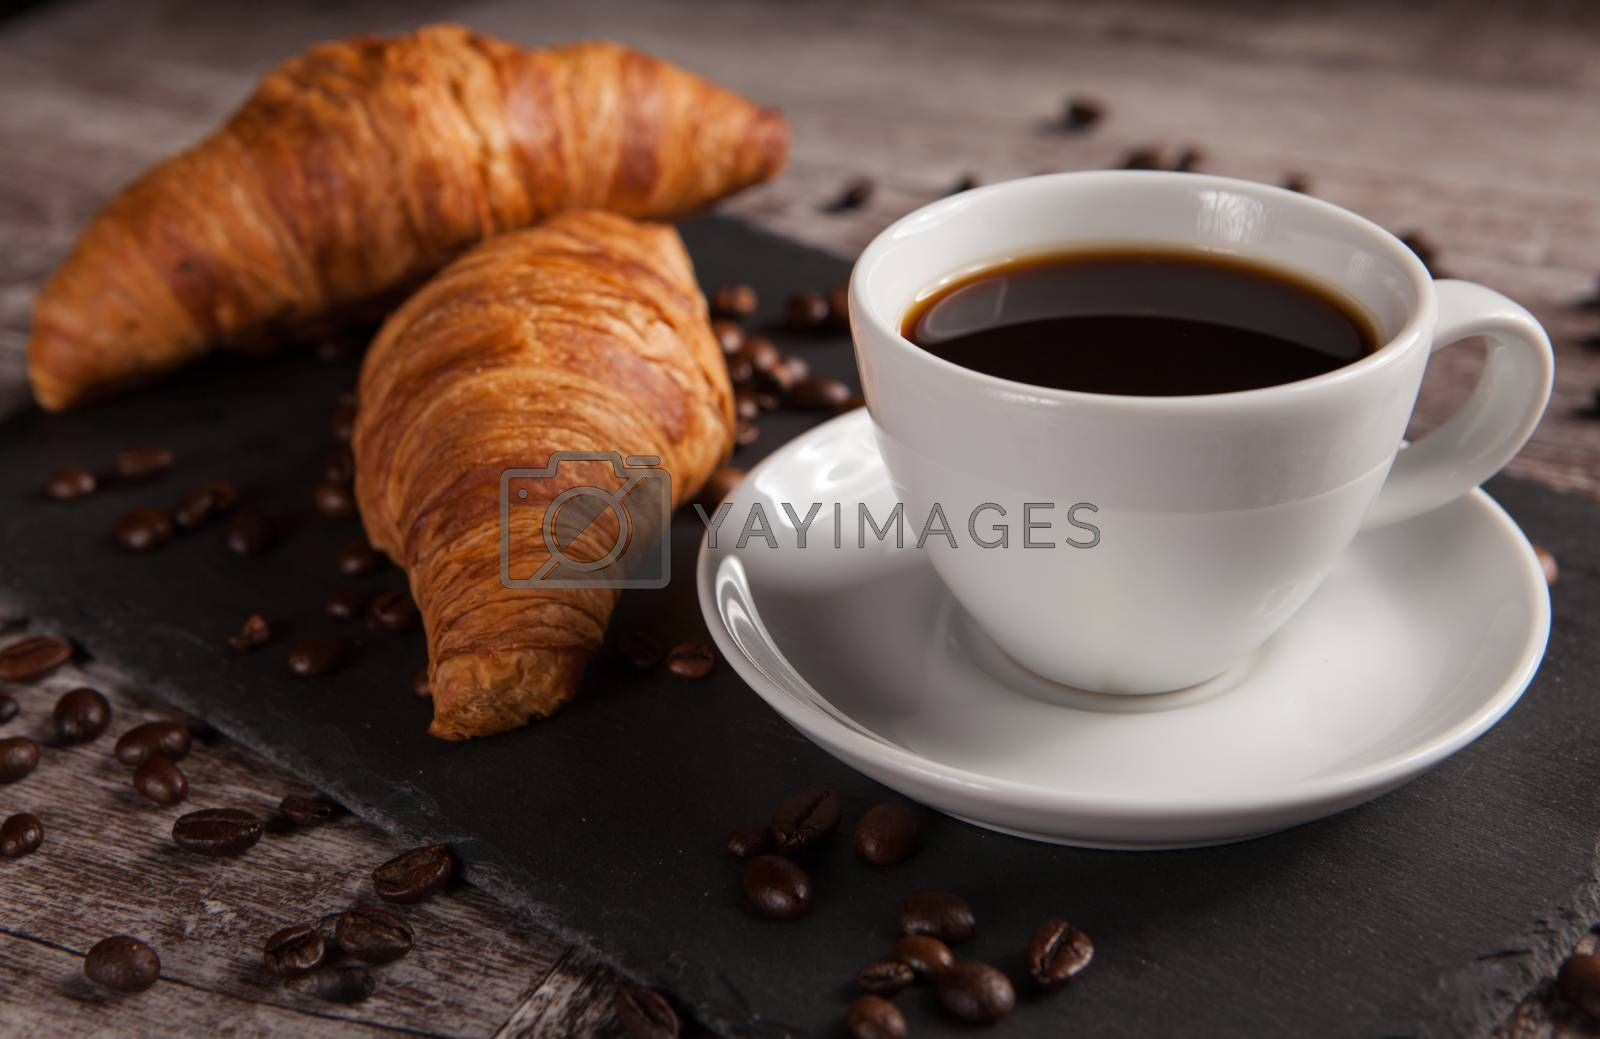 Breakfast with fresh croissants and cup of coffee by DCStudio